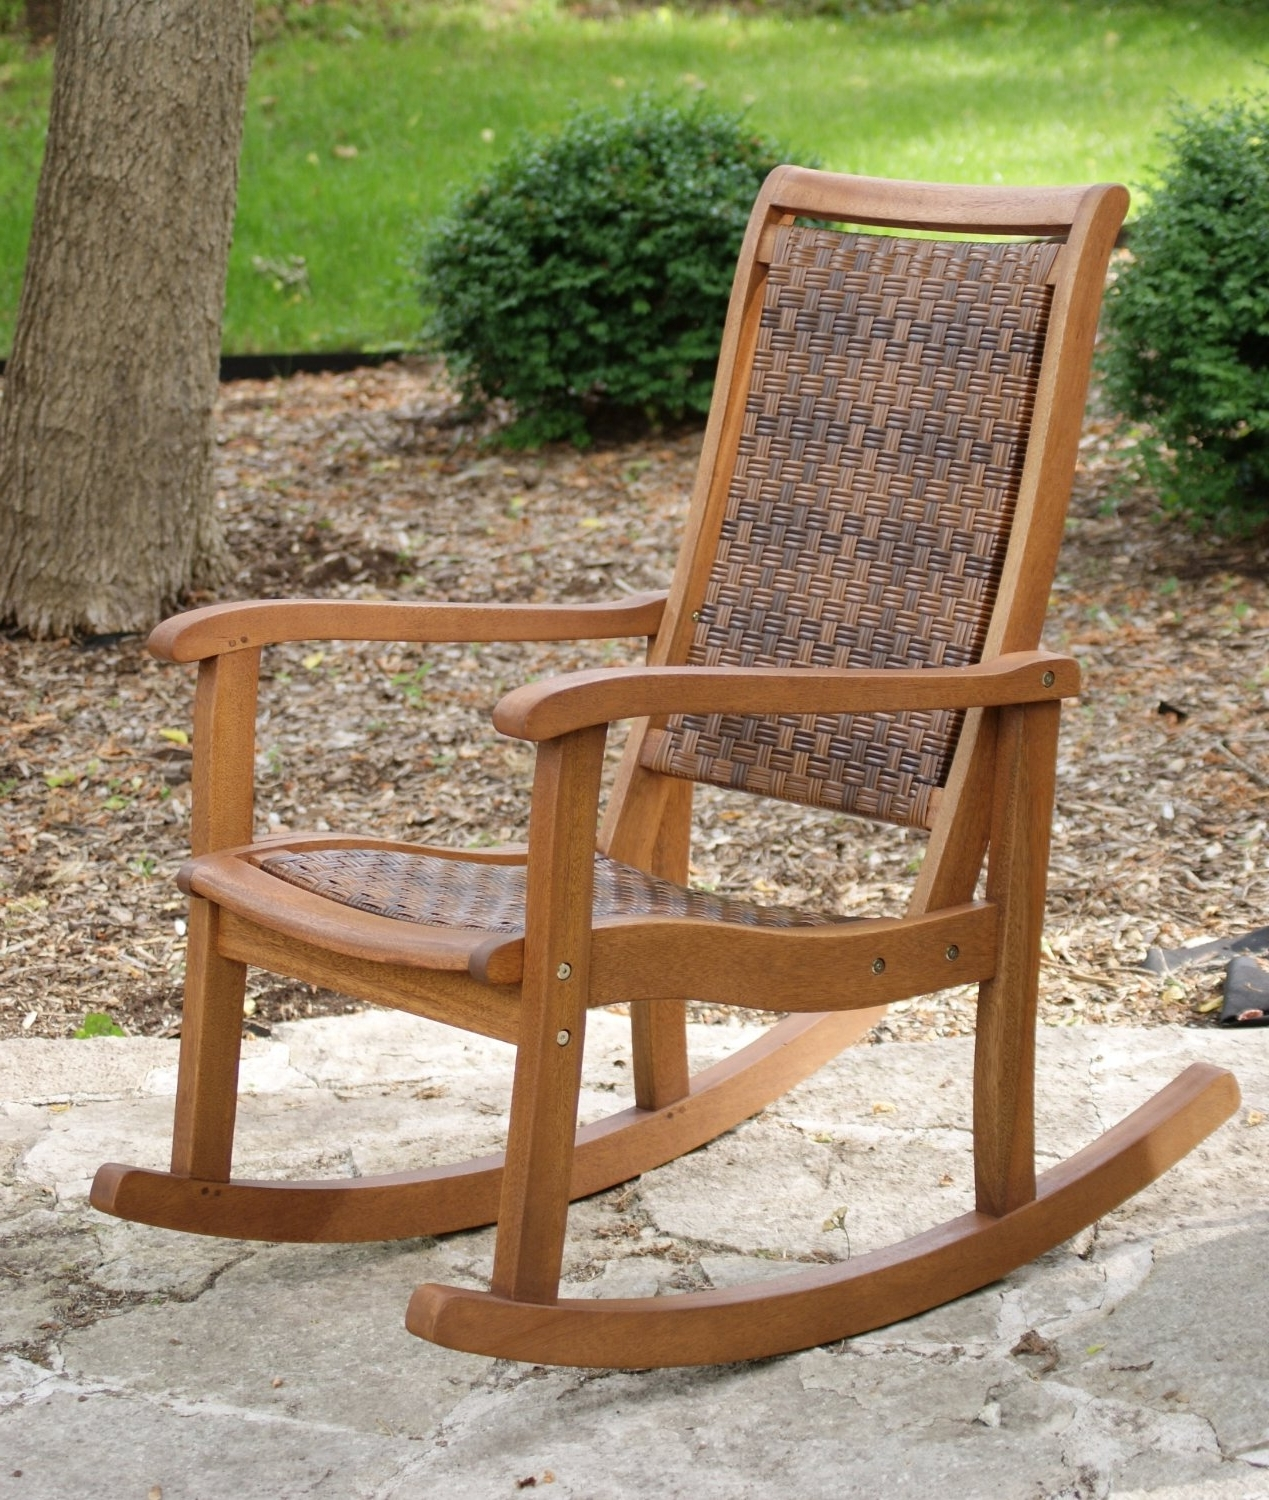 2019 Great Rocking Patio Chairs Outdoor Wicker Rocking Chairs Patio In Outdoor Vinyl Rocking Chairs (View 1 of 20)